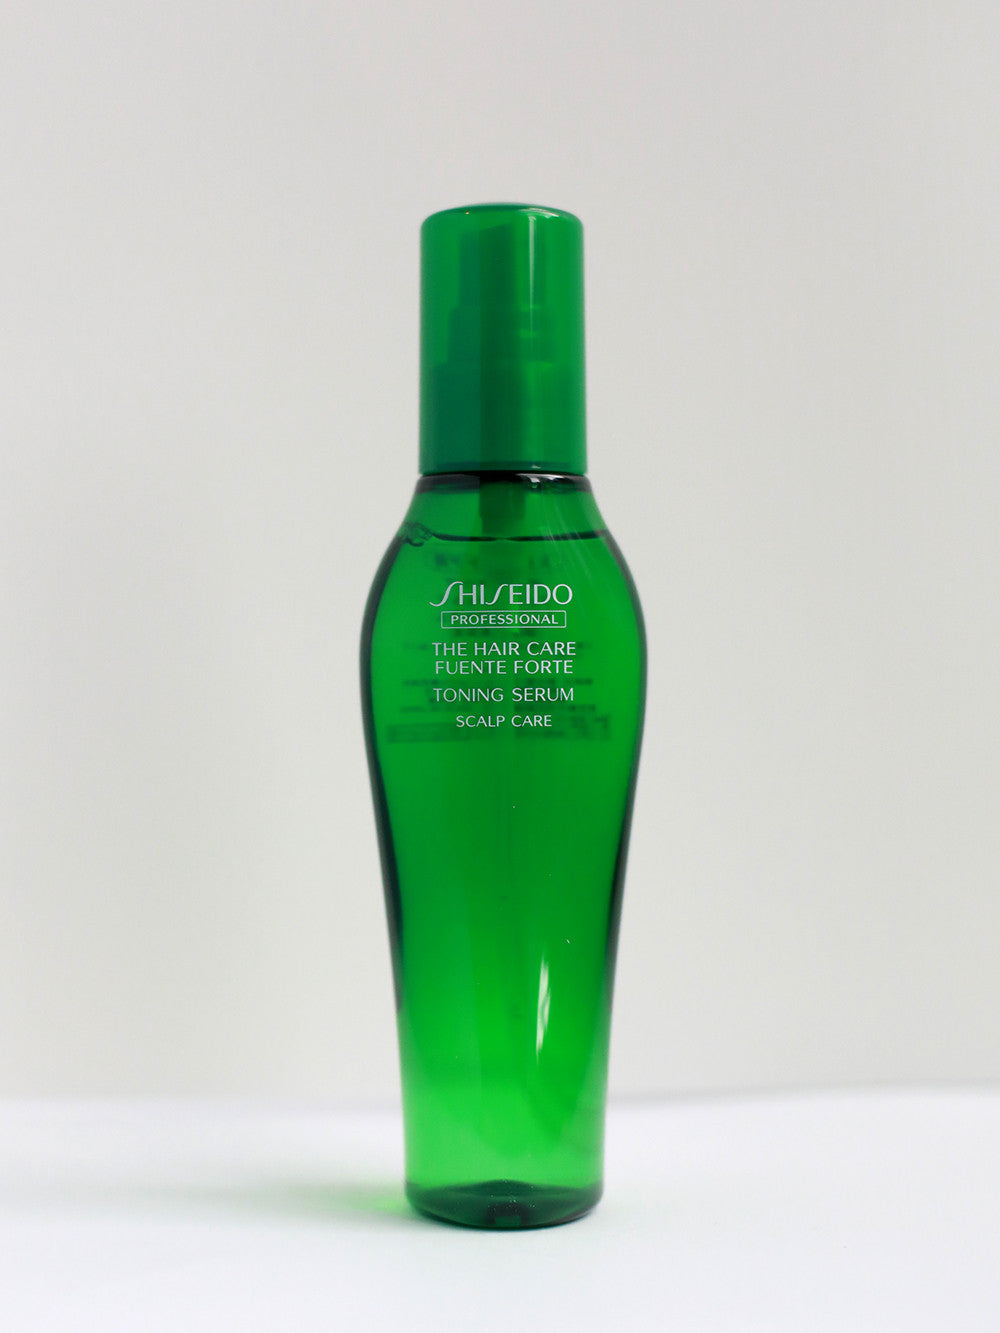 SHISEIDO THE HAIR CARE FUENTE FORTE Toning Serum for Scalp Care